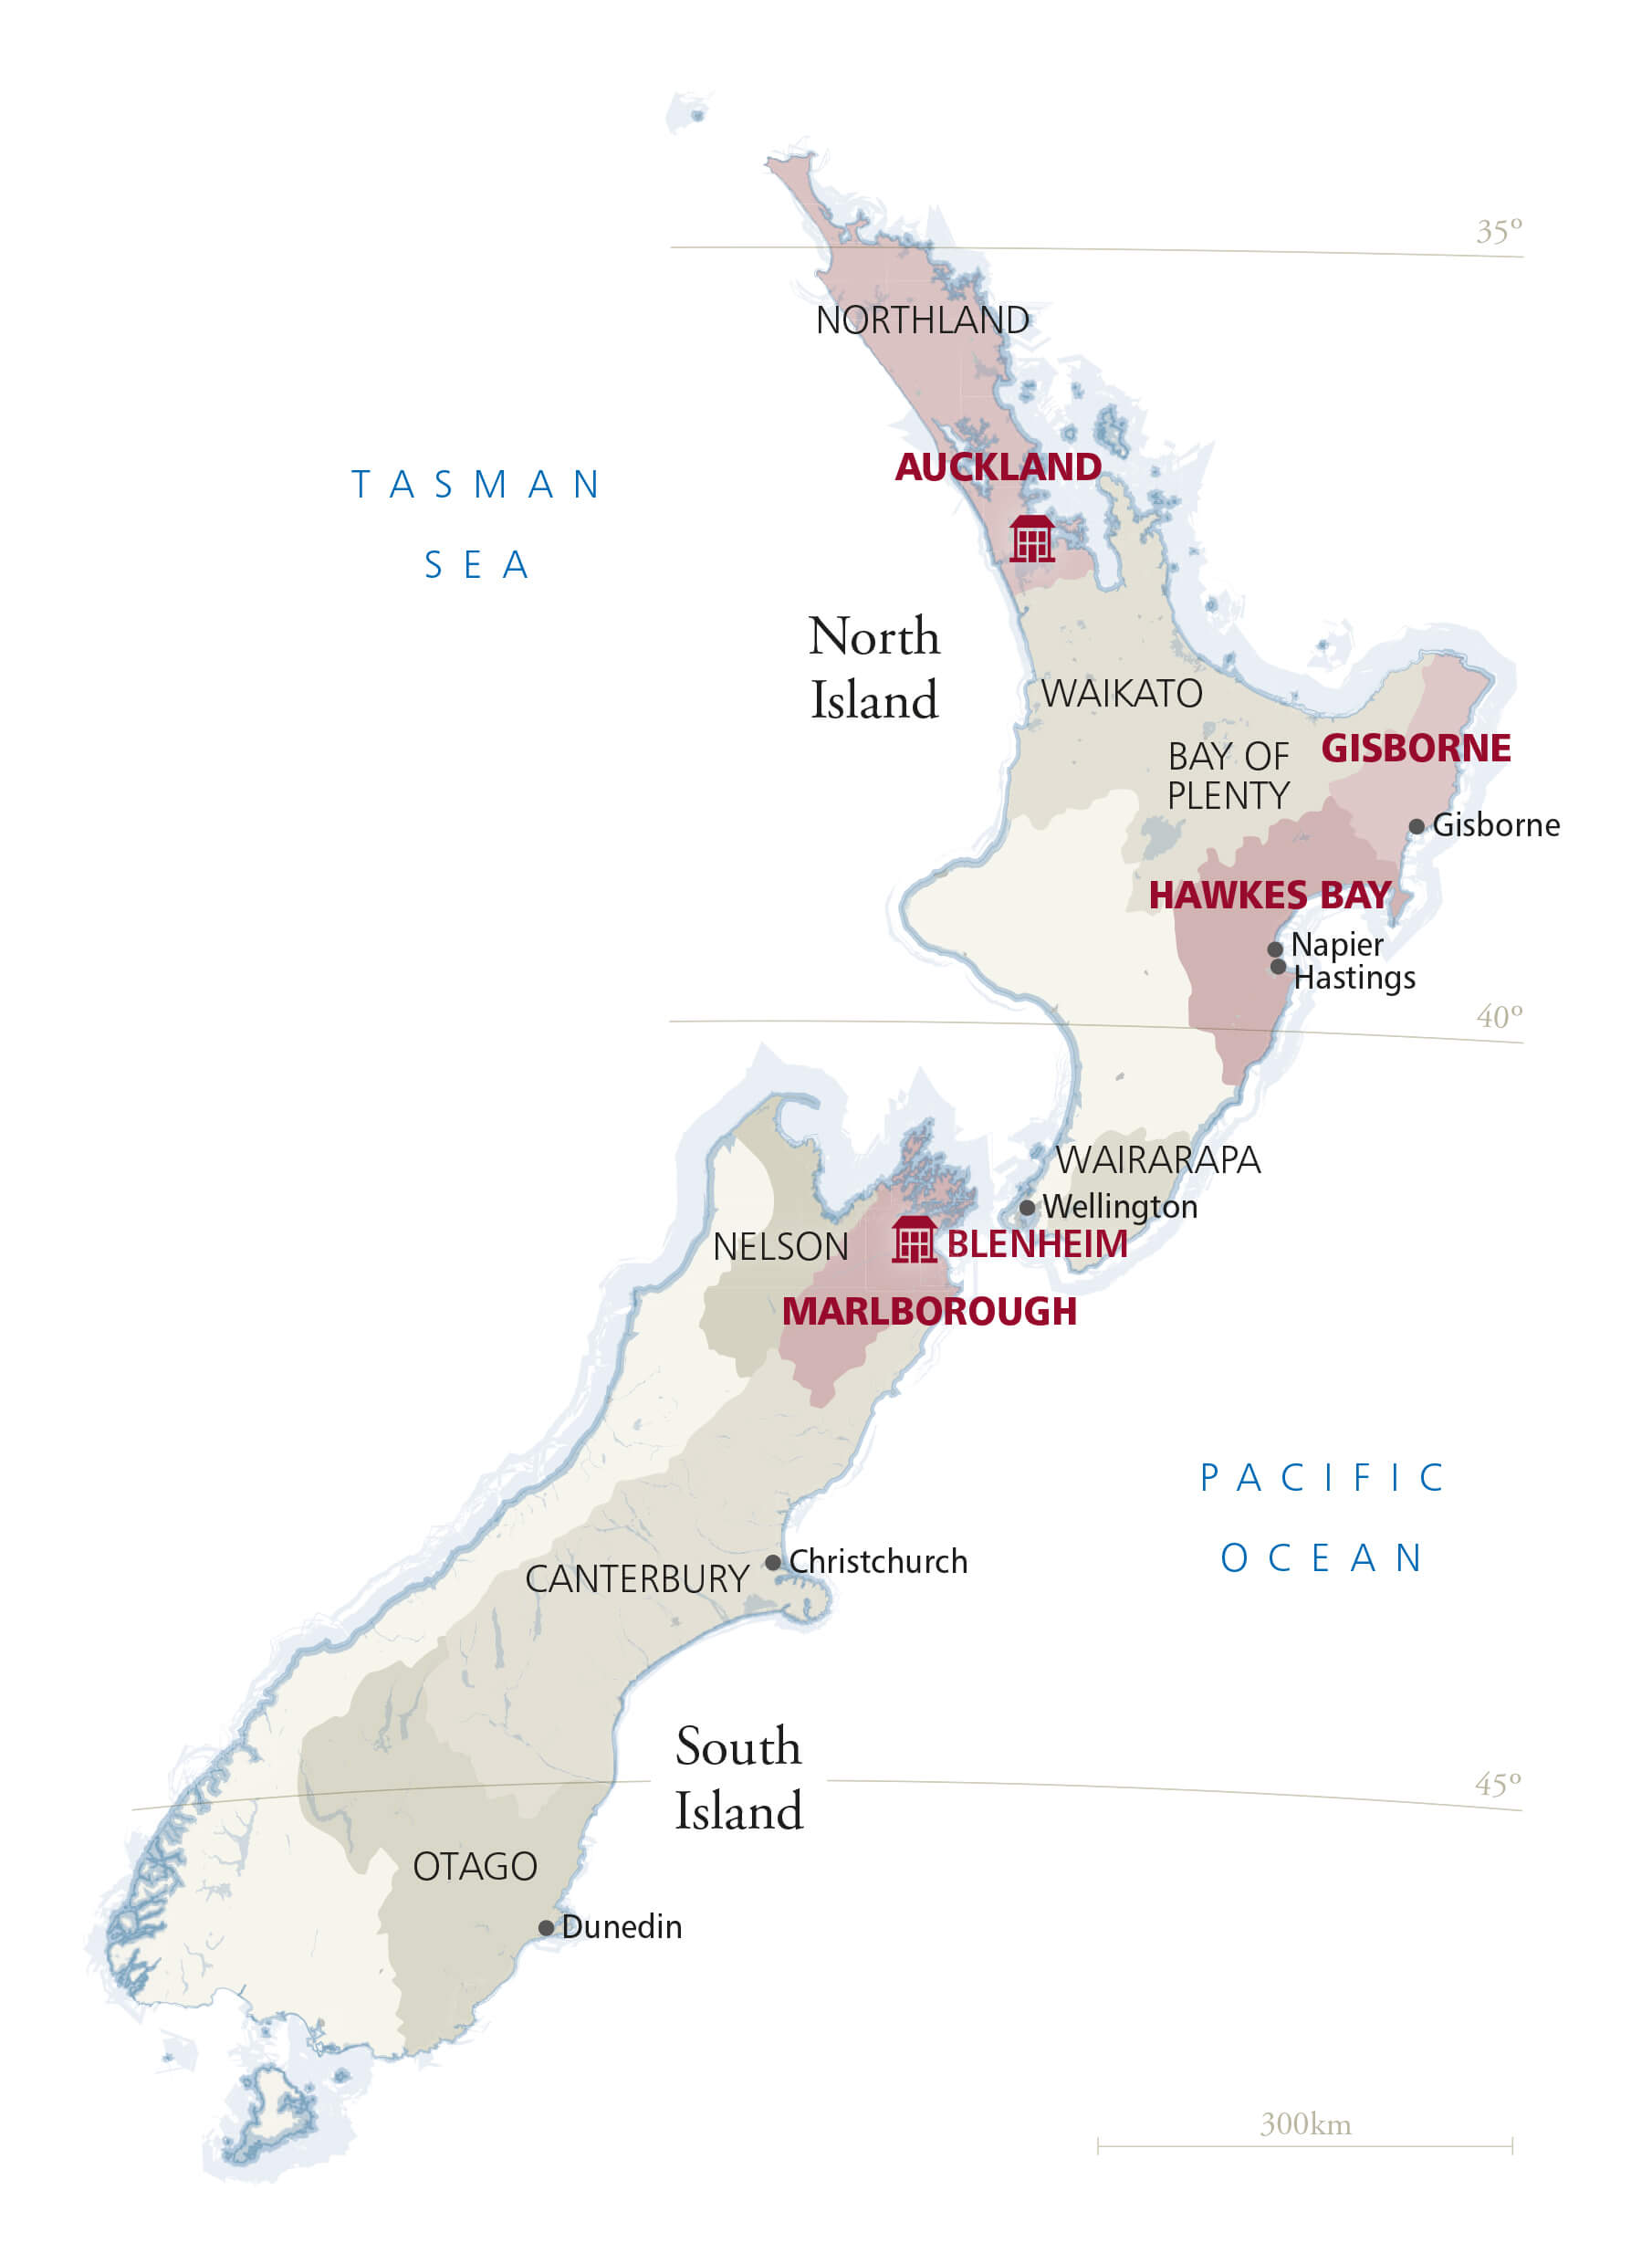 Map of New Zealand showing Villa Maria's vineyard areas and wineries